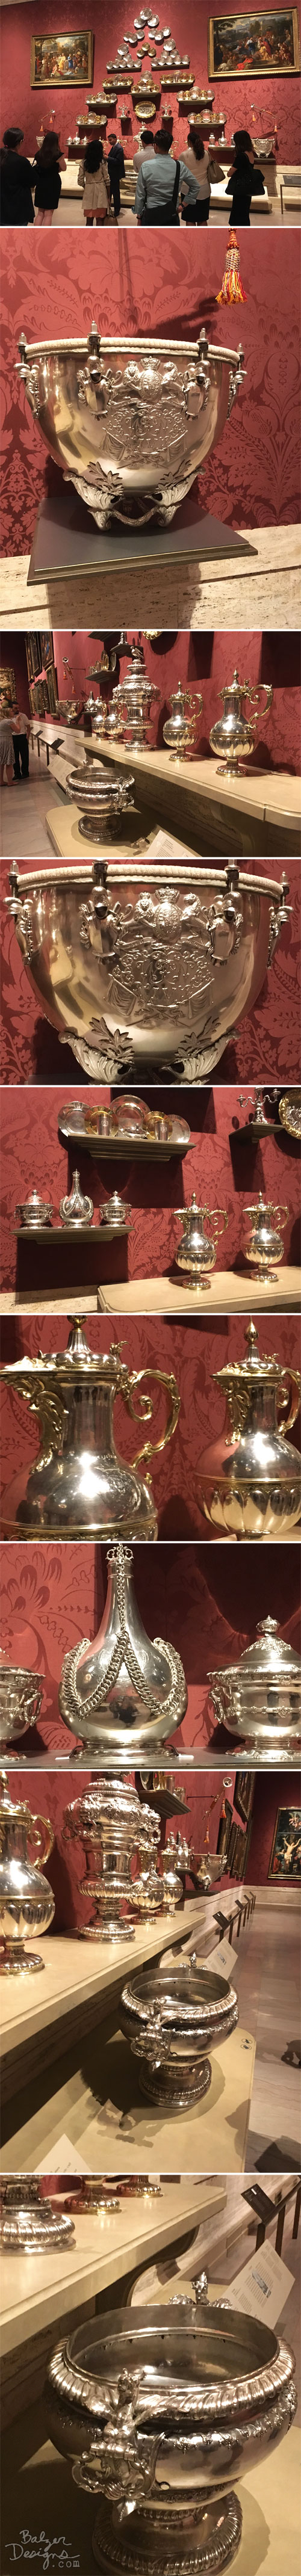 From the Balzer Designs Blog: A King's Ransom: A Curatorial Tour at the MFA